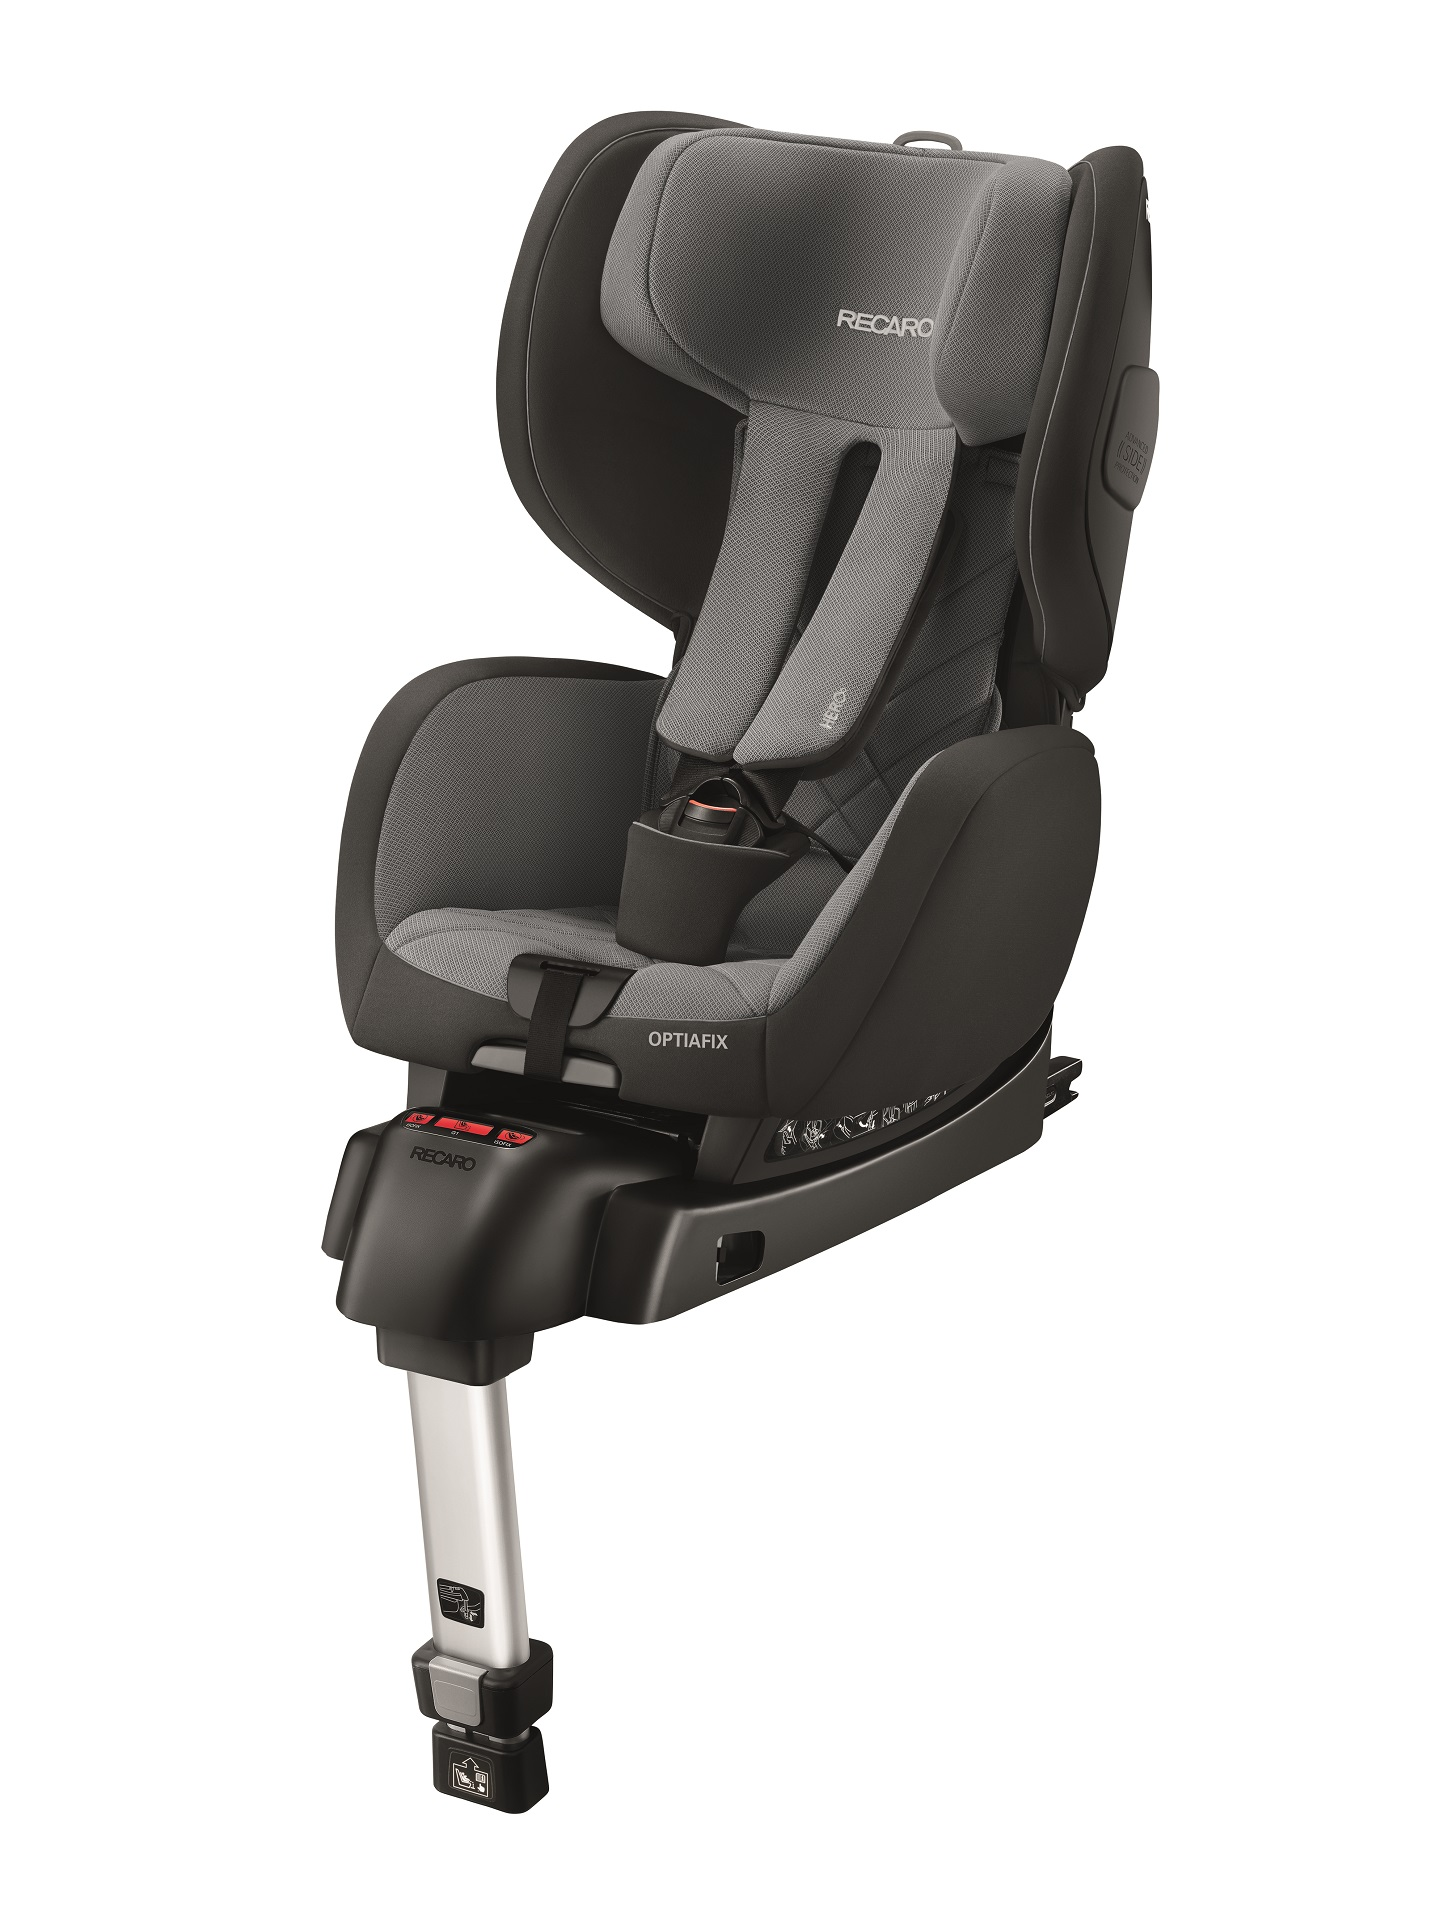 recaro child car seat optiafix 2018 carbon black buy at kidsroom car seats. Black Bedroom Furniture Sets. Home Design Ideas